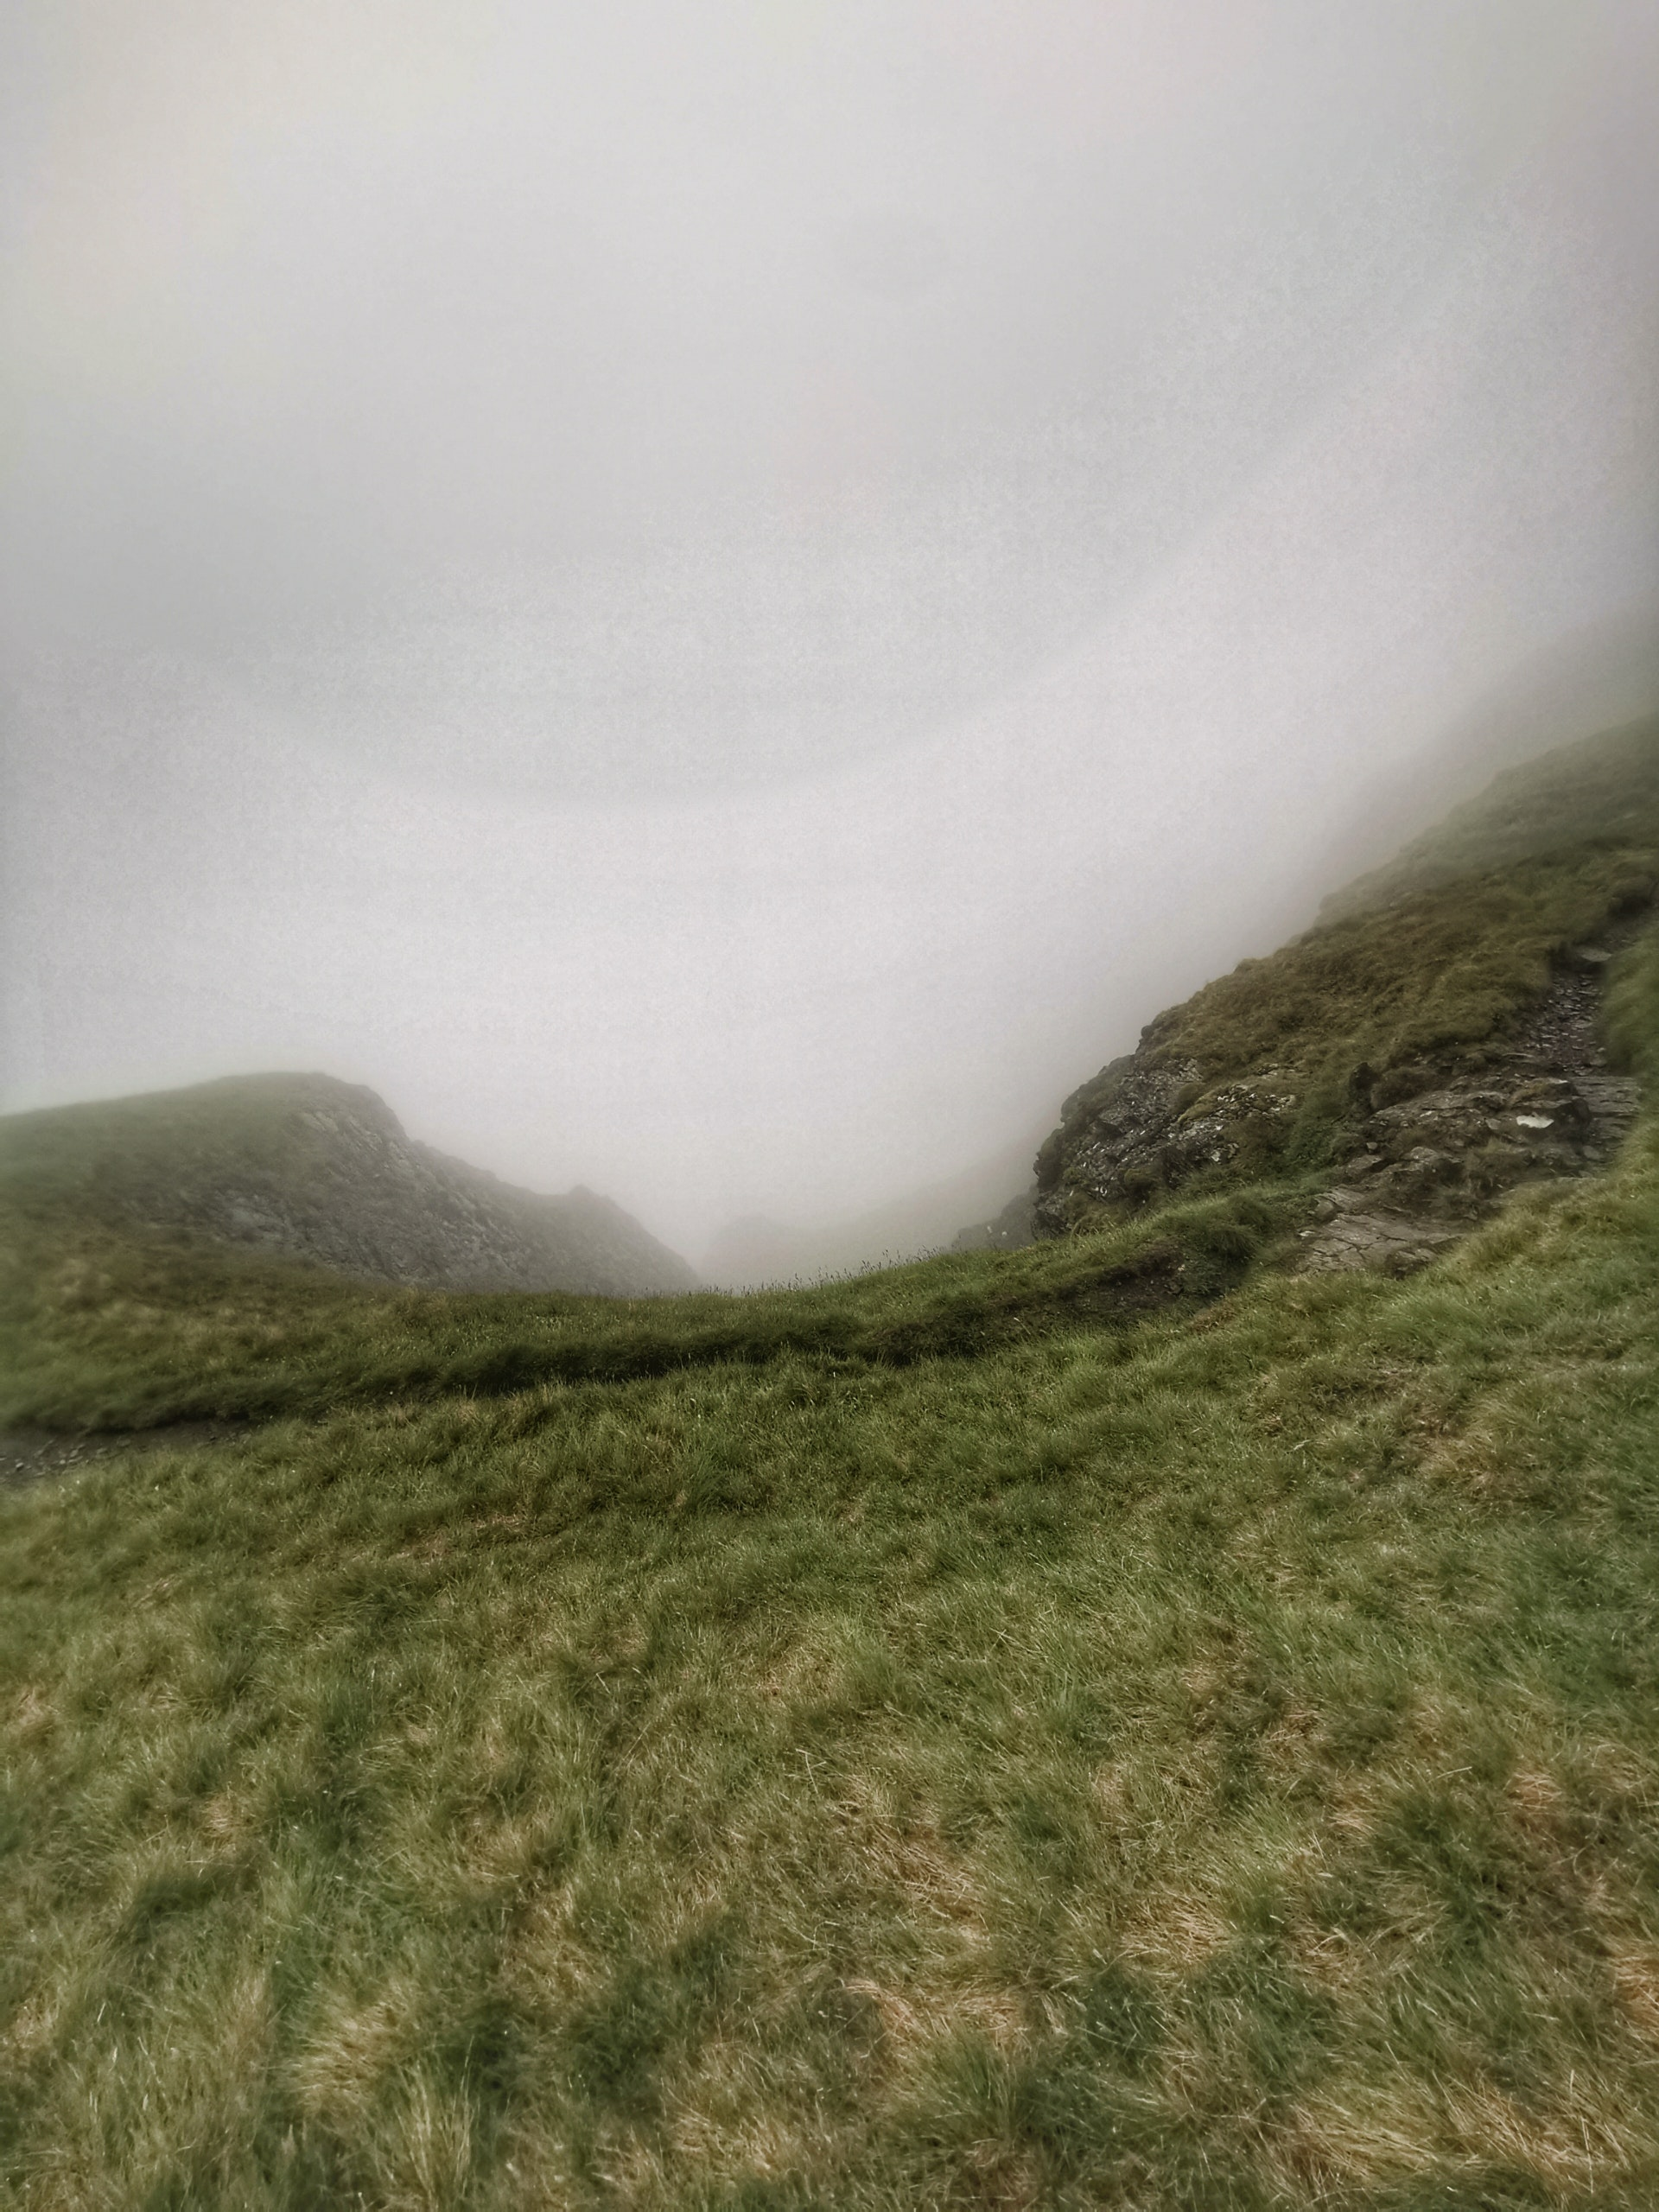 Sheer Drop between Bannerdale Crag and Bowscale Fell